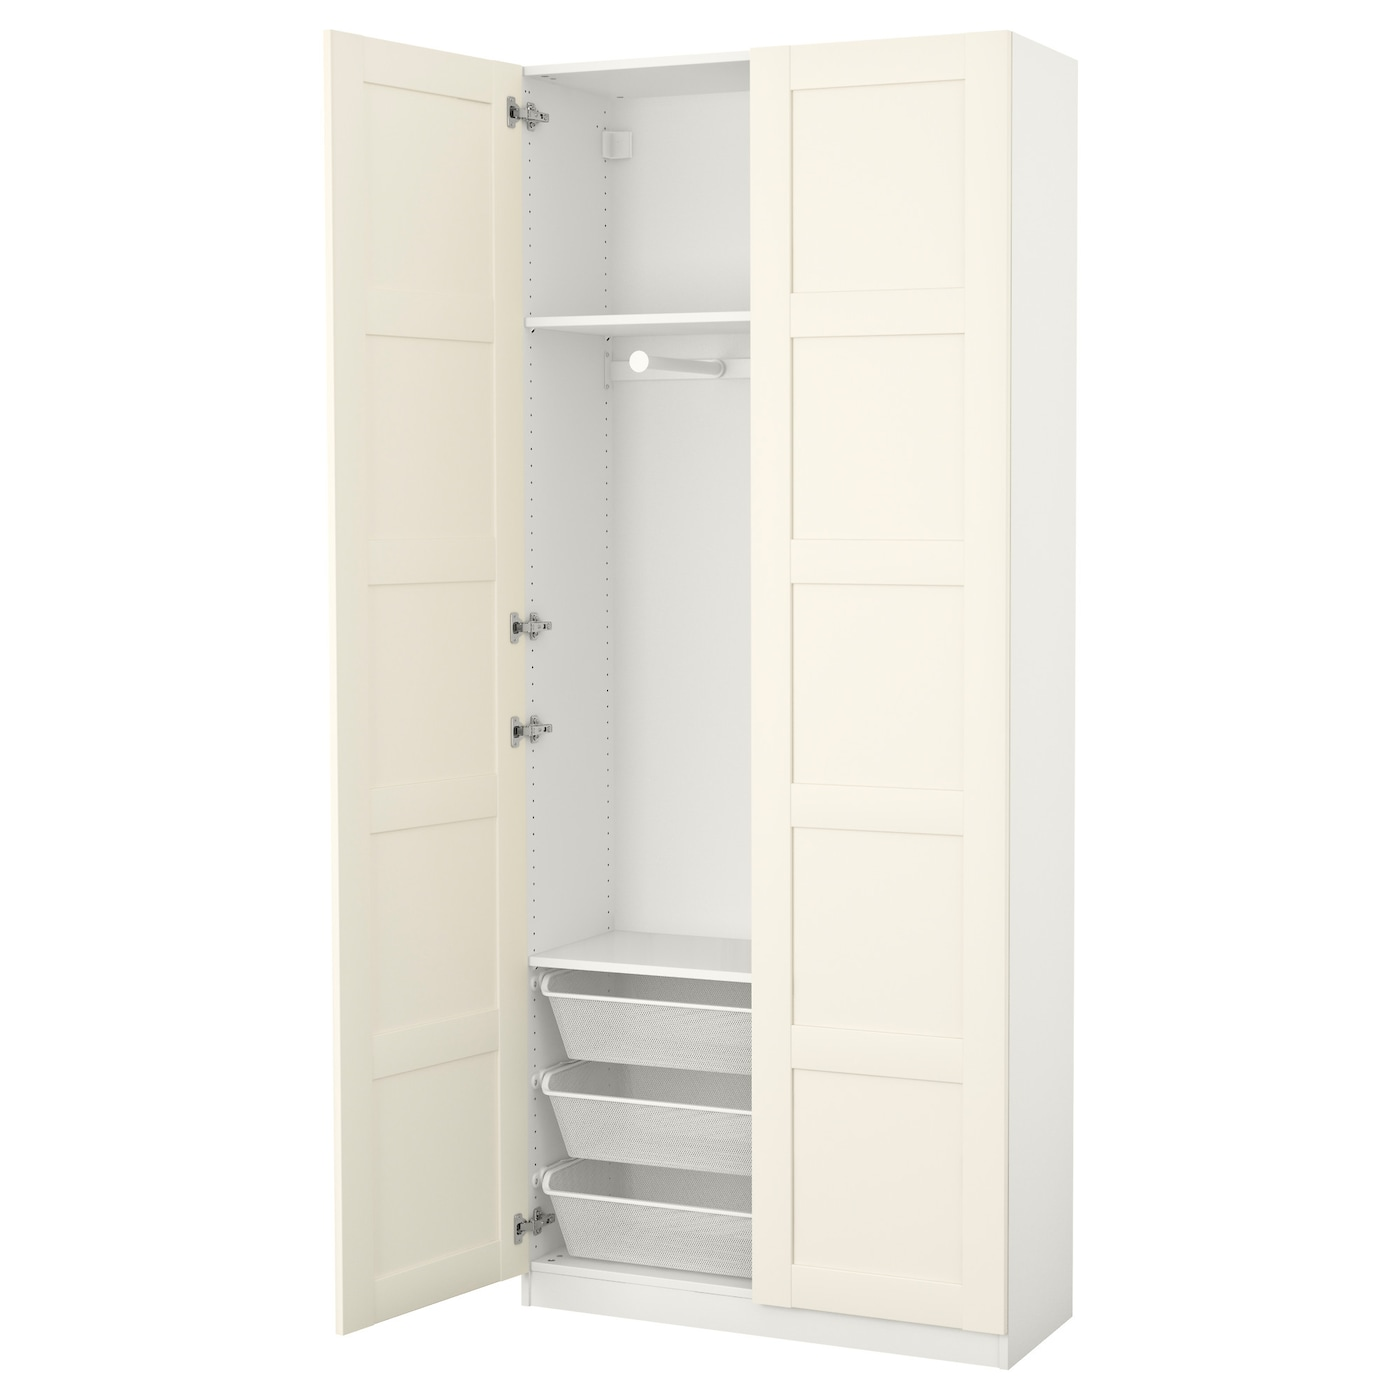 pax wardrobe white bergsbo white 100 x 38 x 236 cm ikea. Black Bedroom Furniture Sets. Home Design Ideas